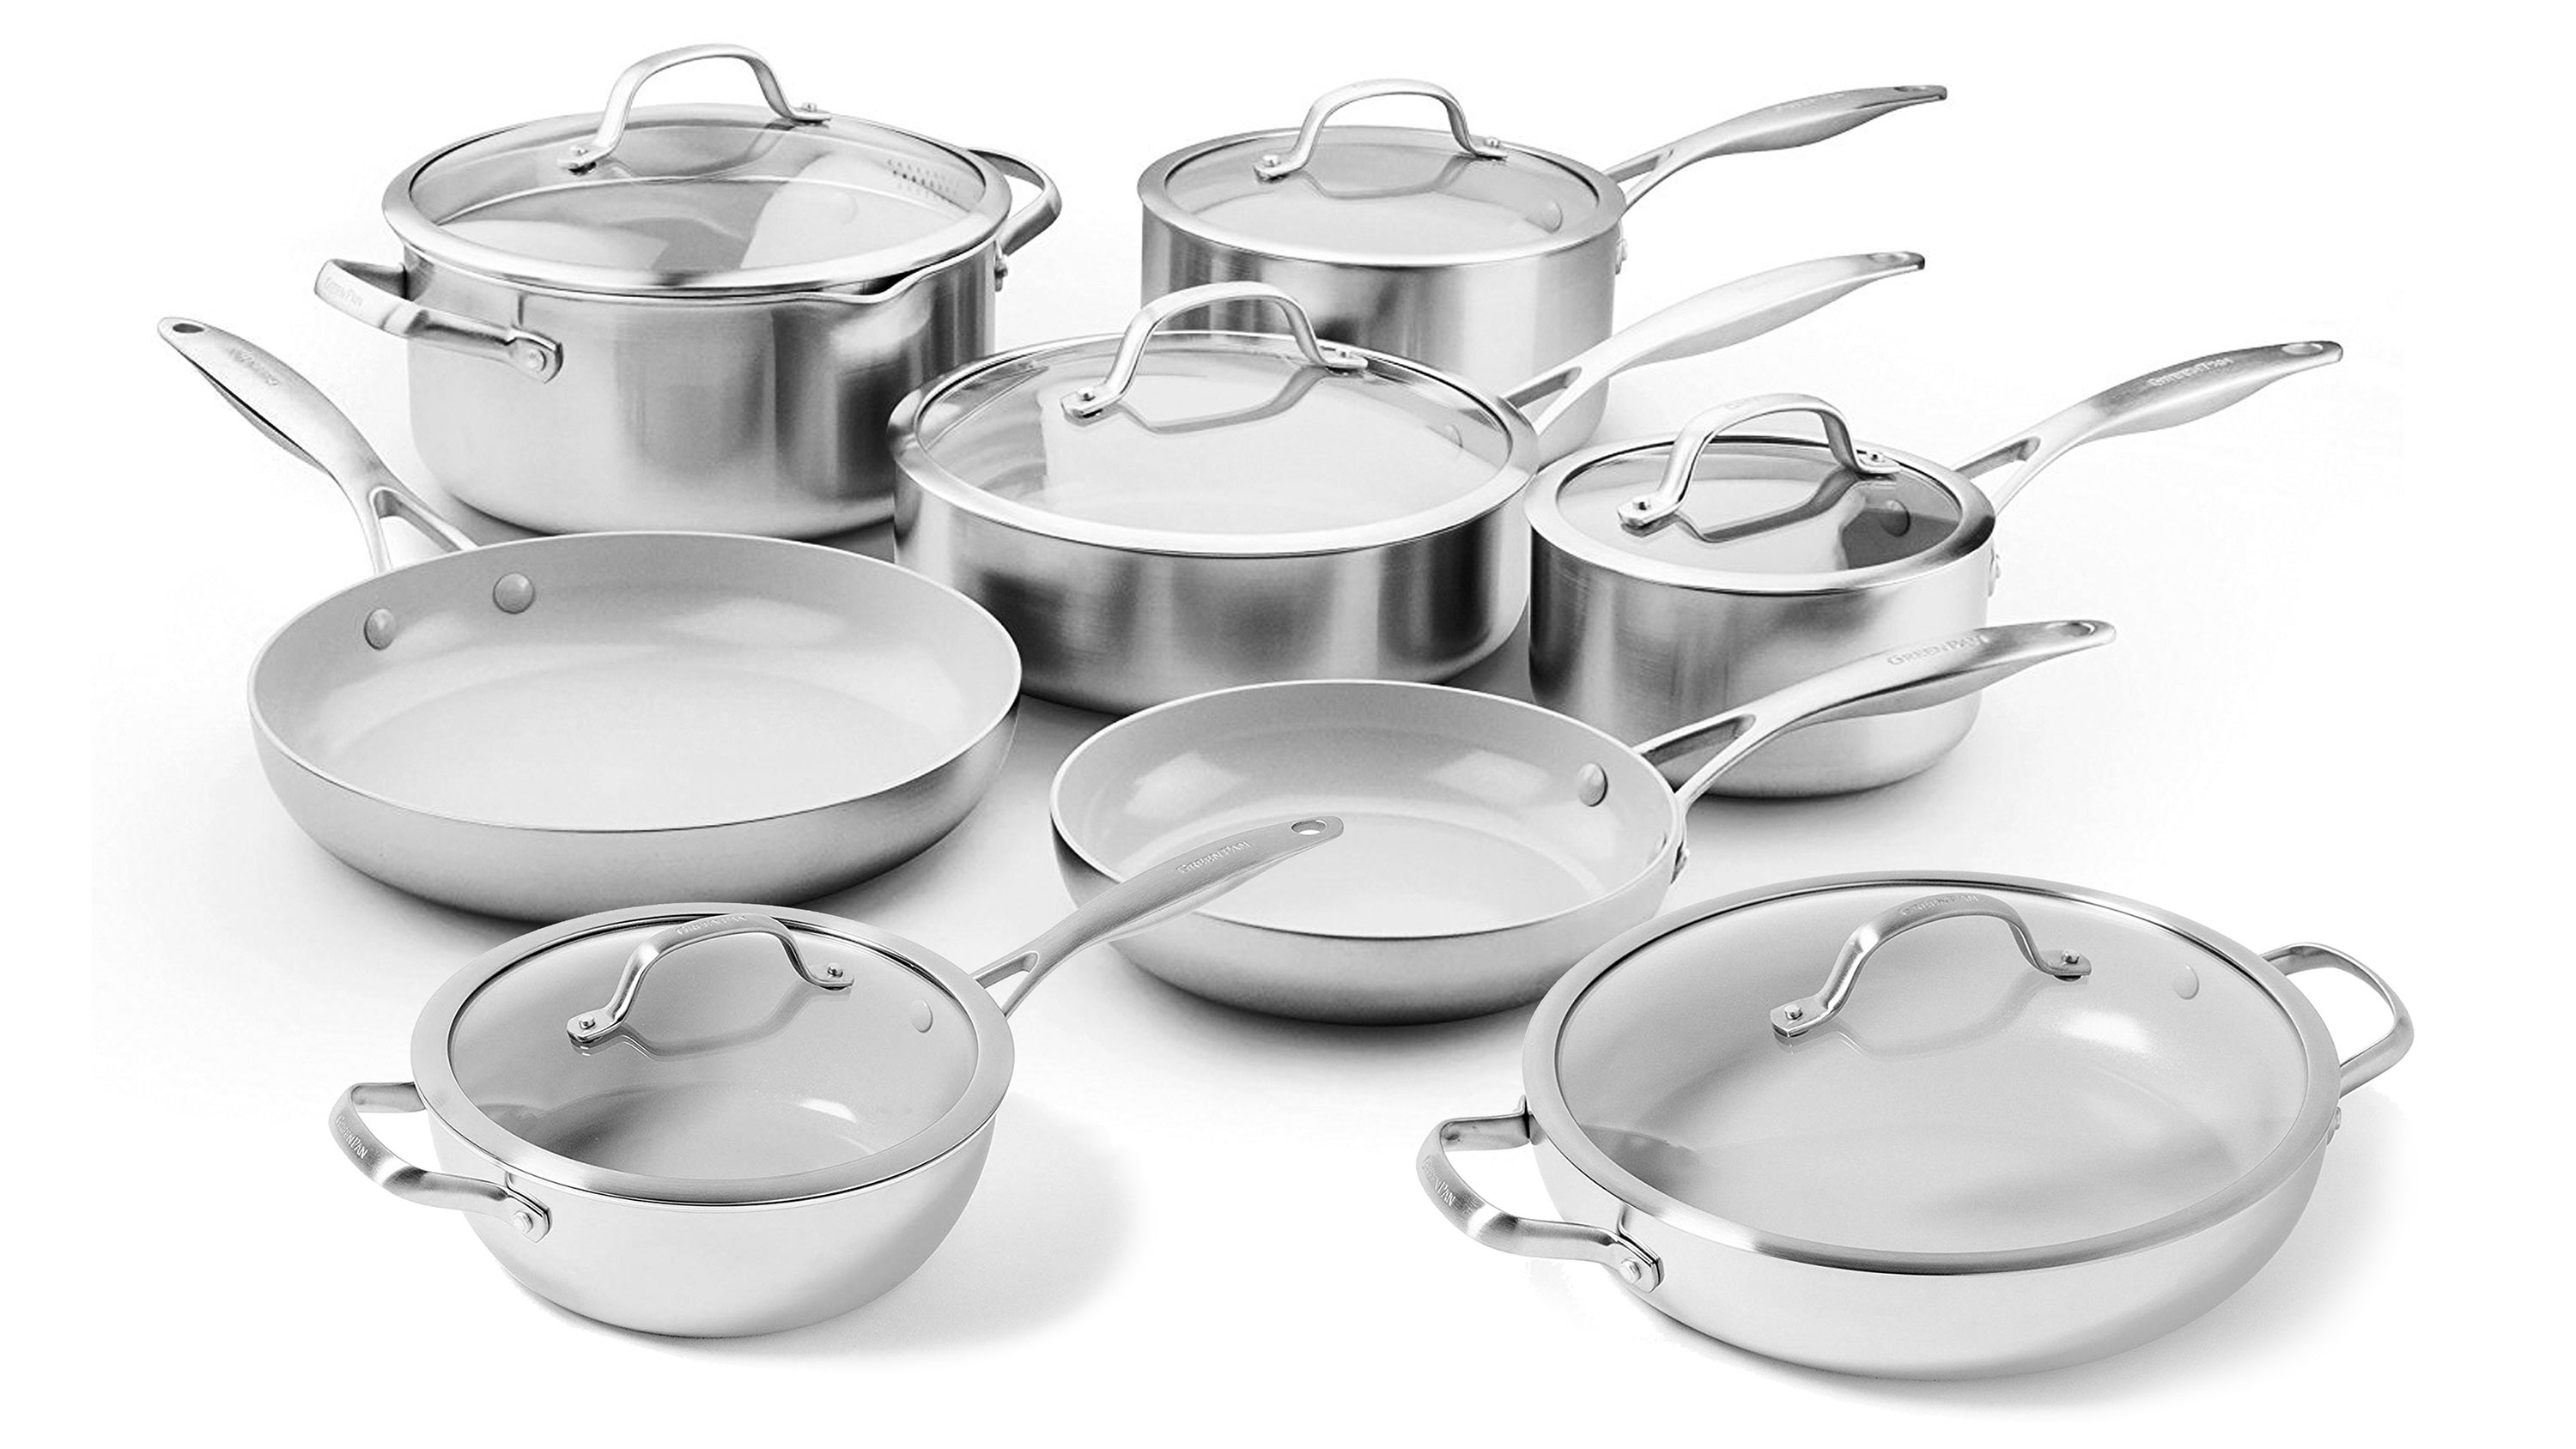 GreenPan Venice Pro 14 Piece Nonstick Cookware Set